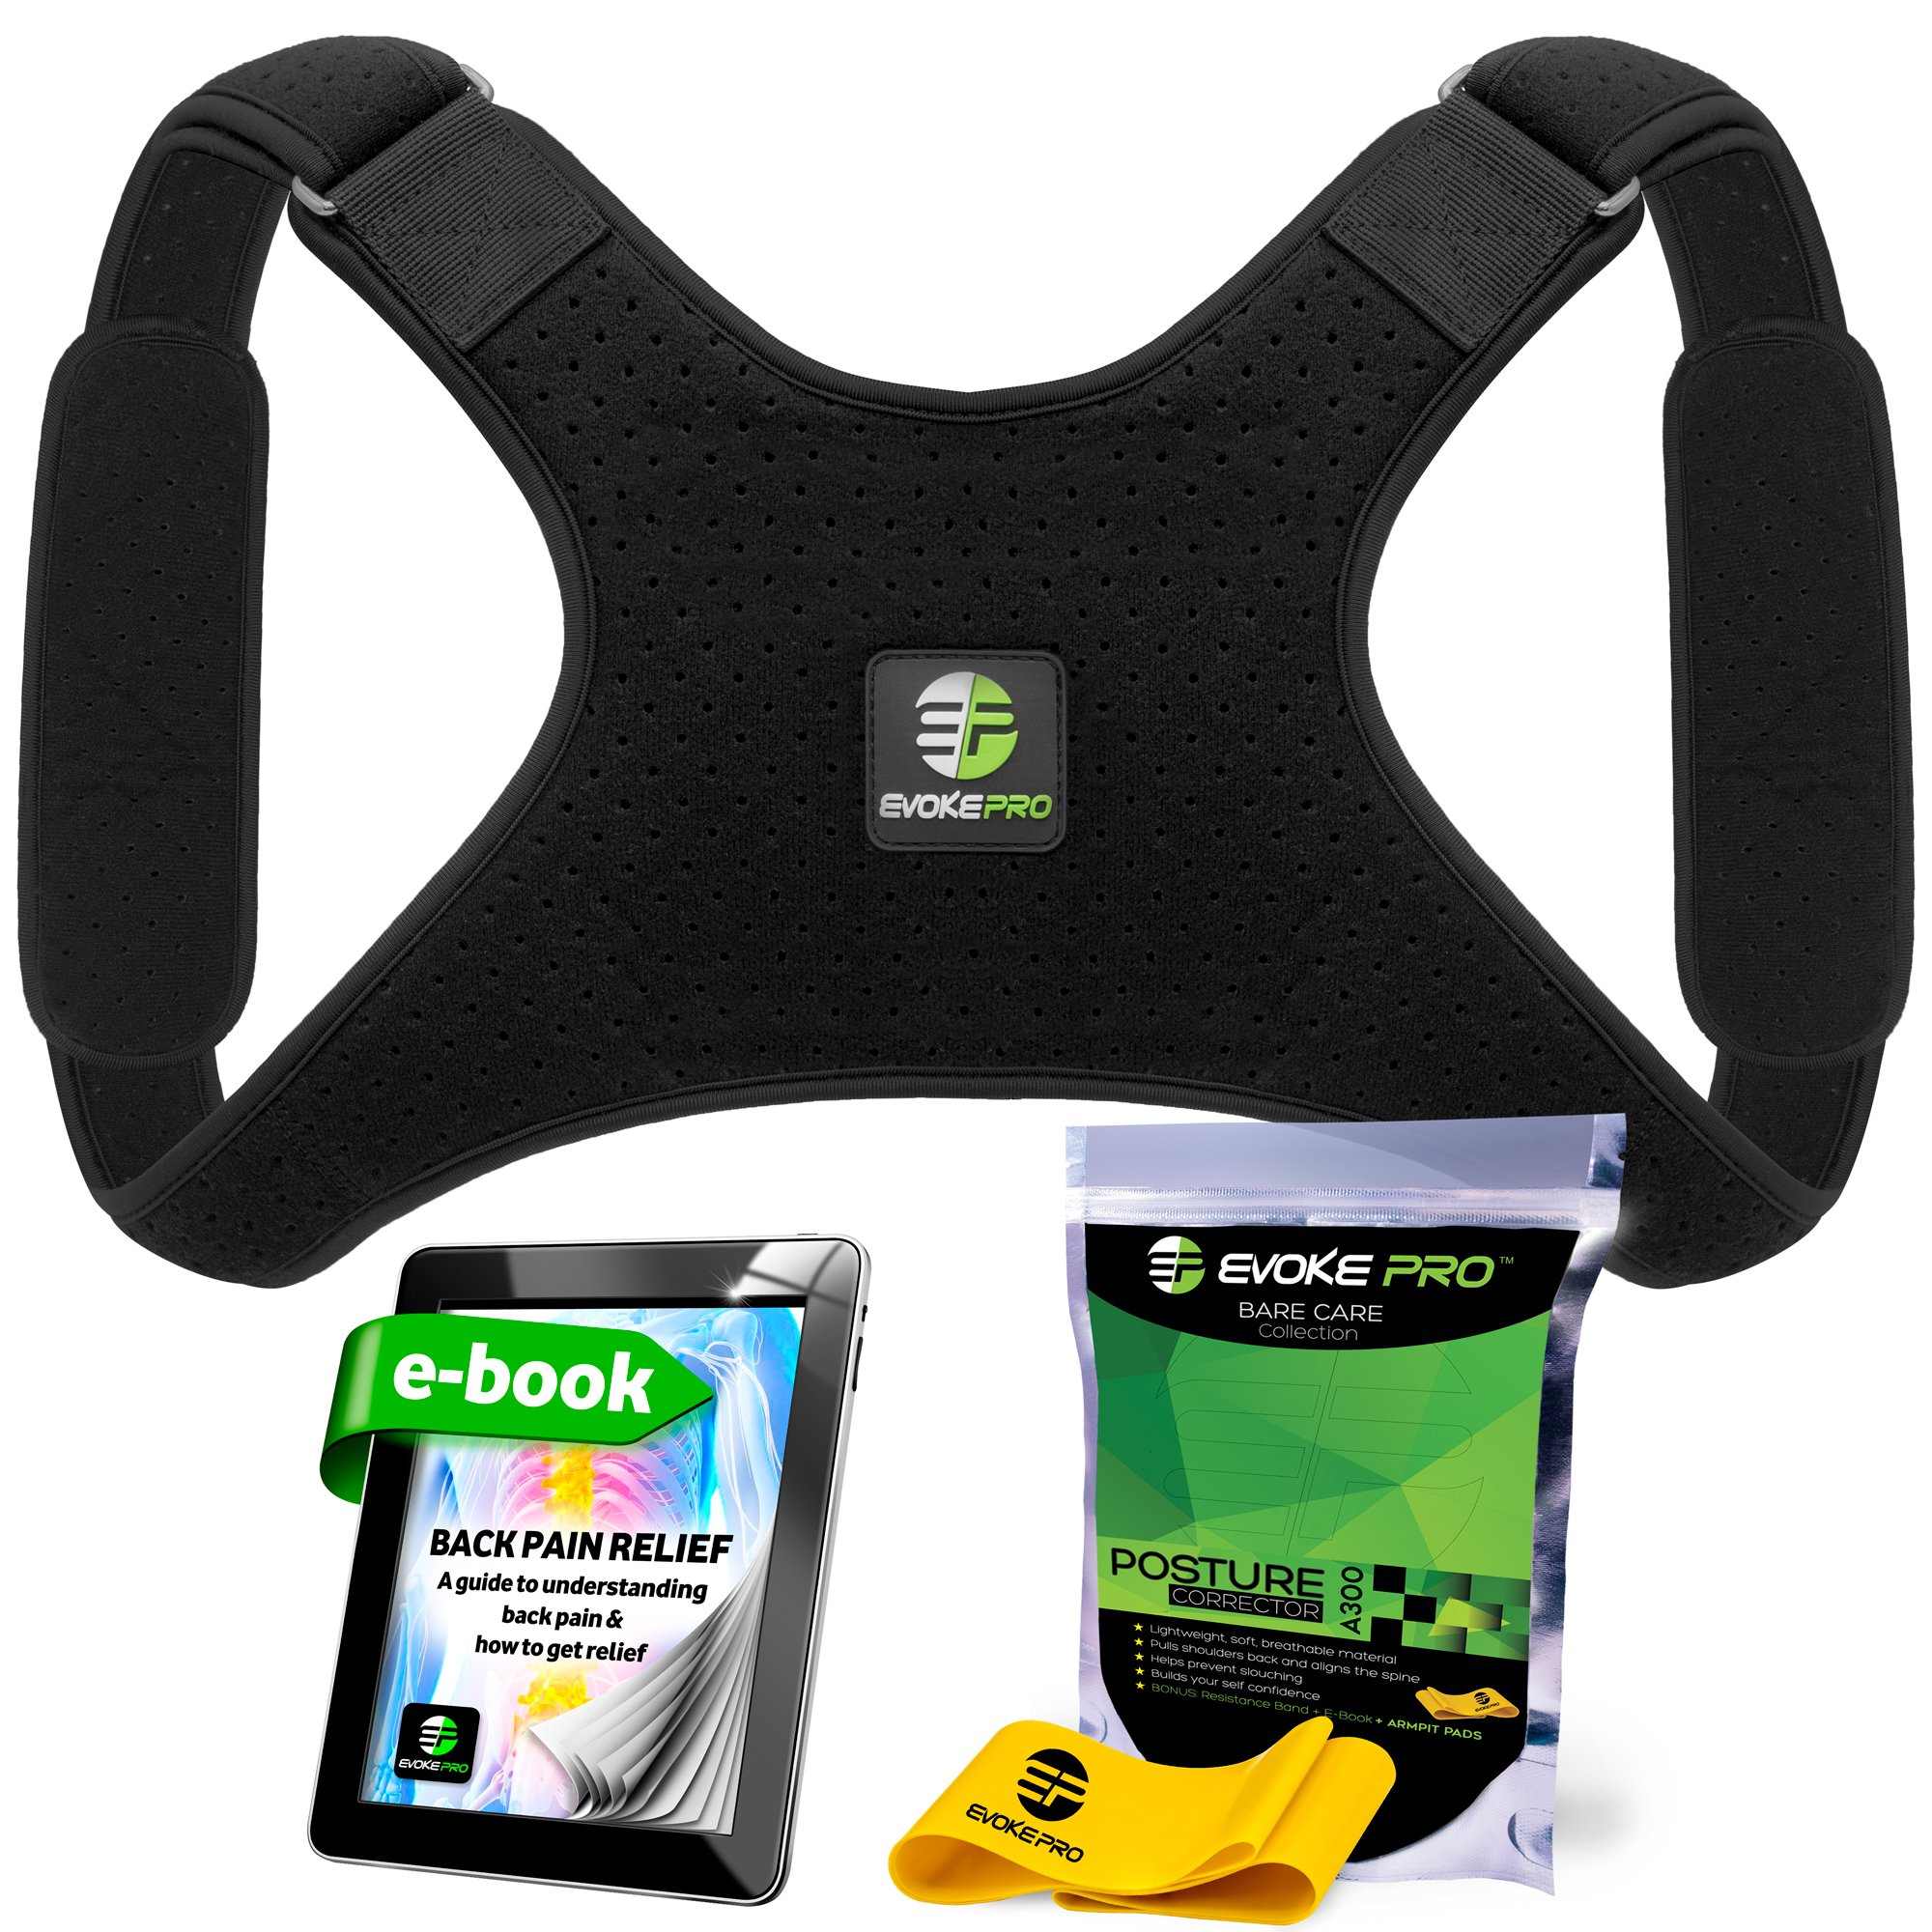 Back Posture Corrector for Women and Men + Resistance Band by Evoke Pro - Trains Your Back Muscles to Prevent Slouching and Provides Back Pain Relief … (X-Large + Armpit Pads)